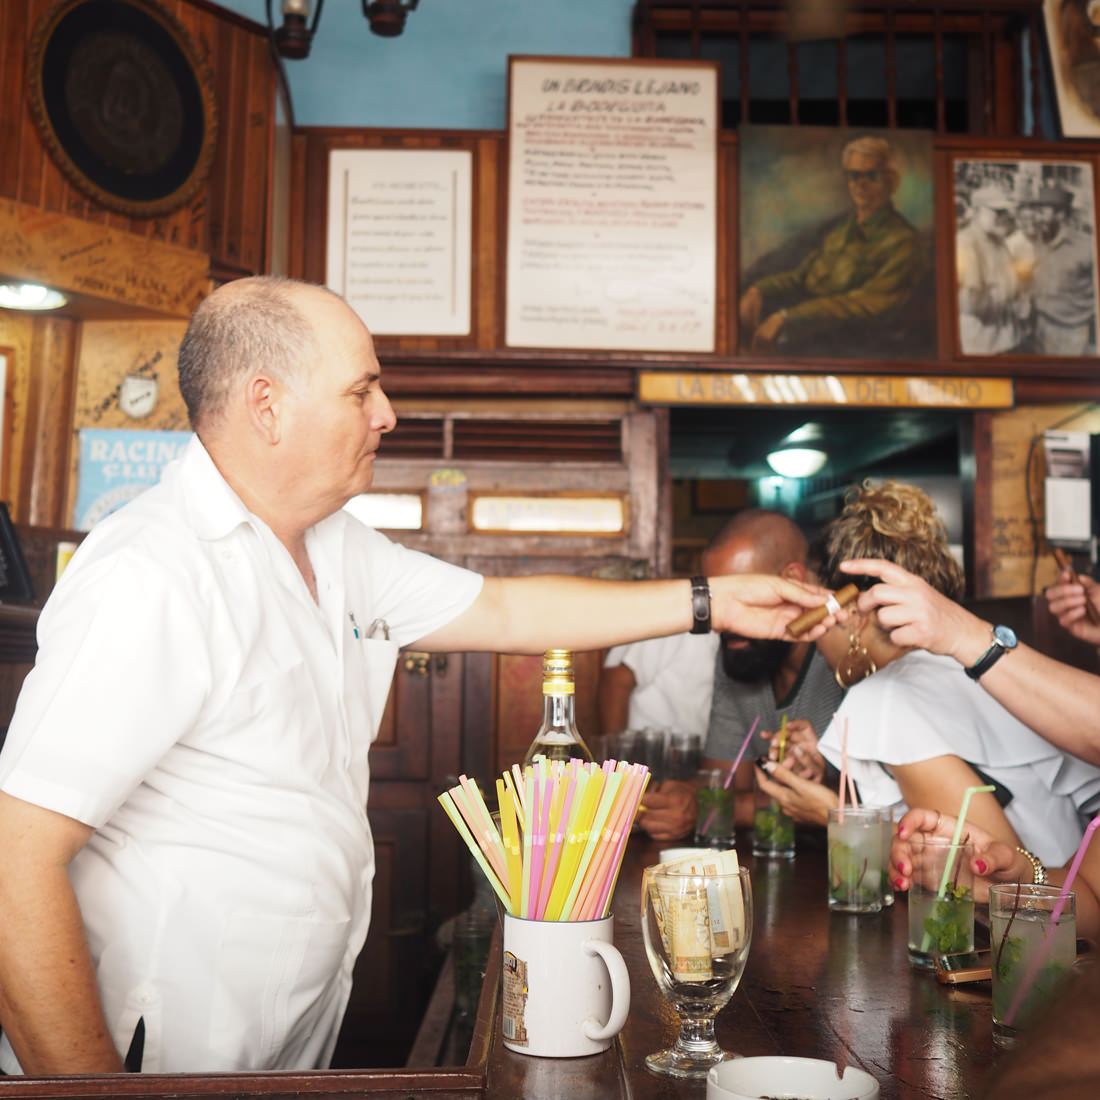 Nightlife in Havana – Where to drink the best Mojitos?